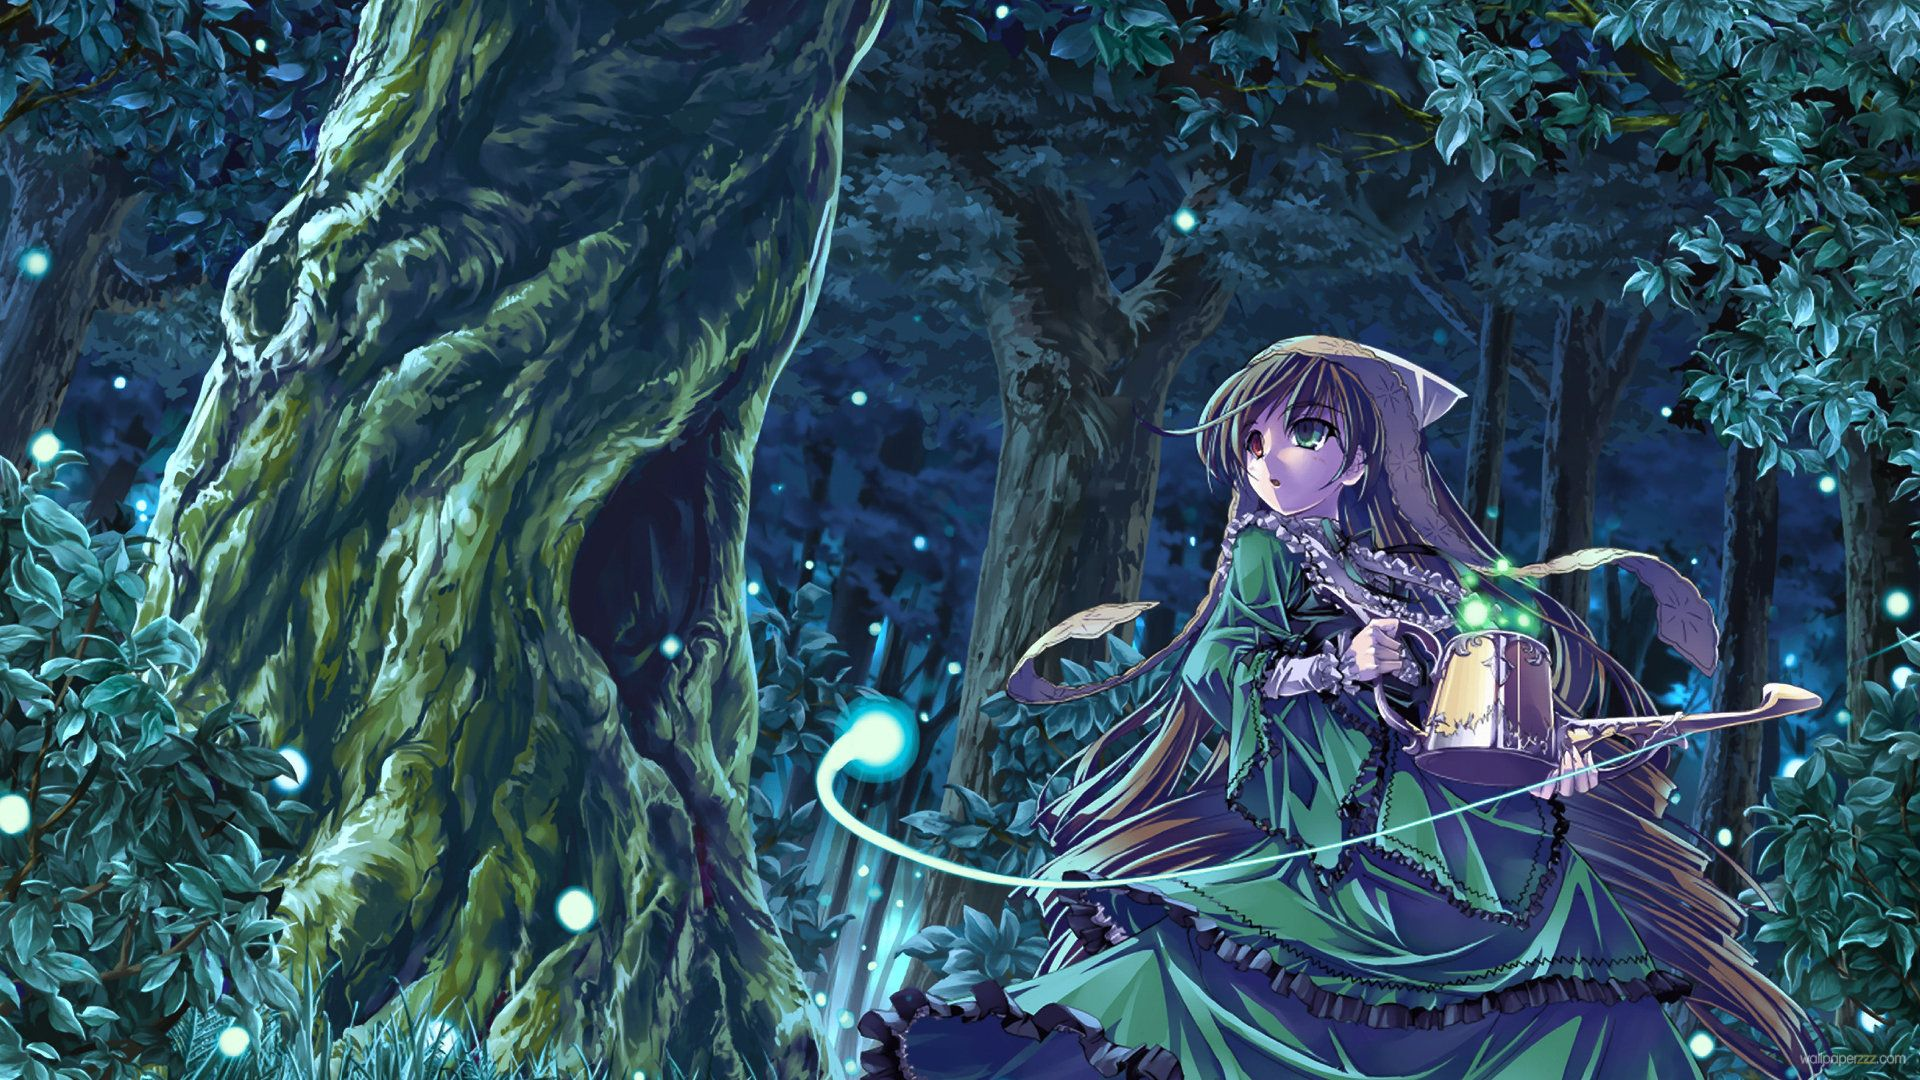 Japanese Anime Forest Rozen Maiden Night Forest Hd Anime Wallpaper Anime Wallpaper Anime Art Hd Anime Wallpapers